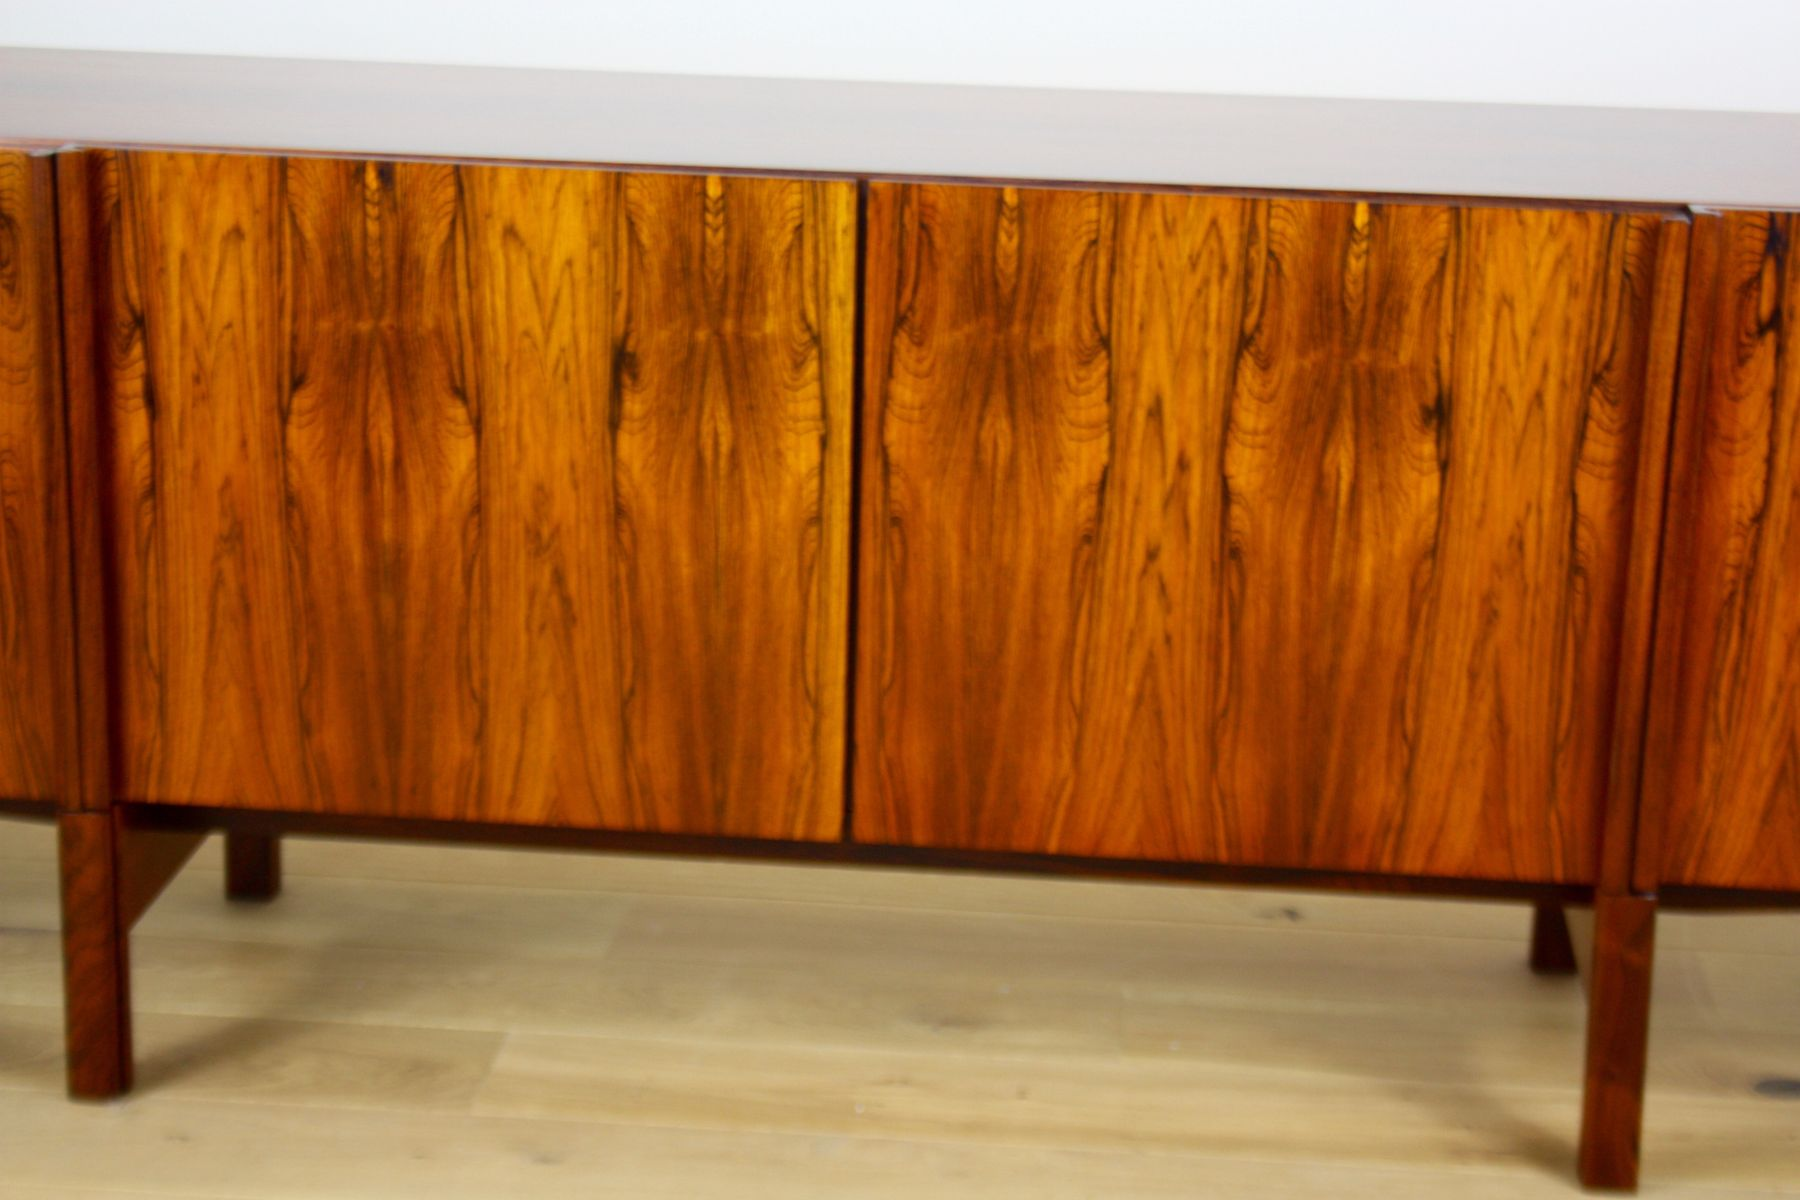 langes sideboard aus palisander von ib kofod larsen f r faarup mobelfabrik 1960er bei pamono kaufen. Black Bedroom Furniture Sets. Home Design Ideas